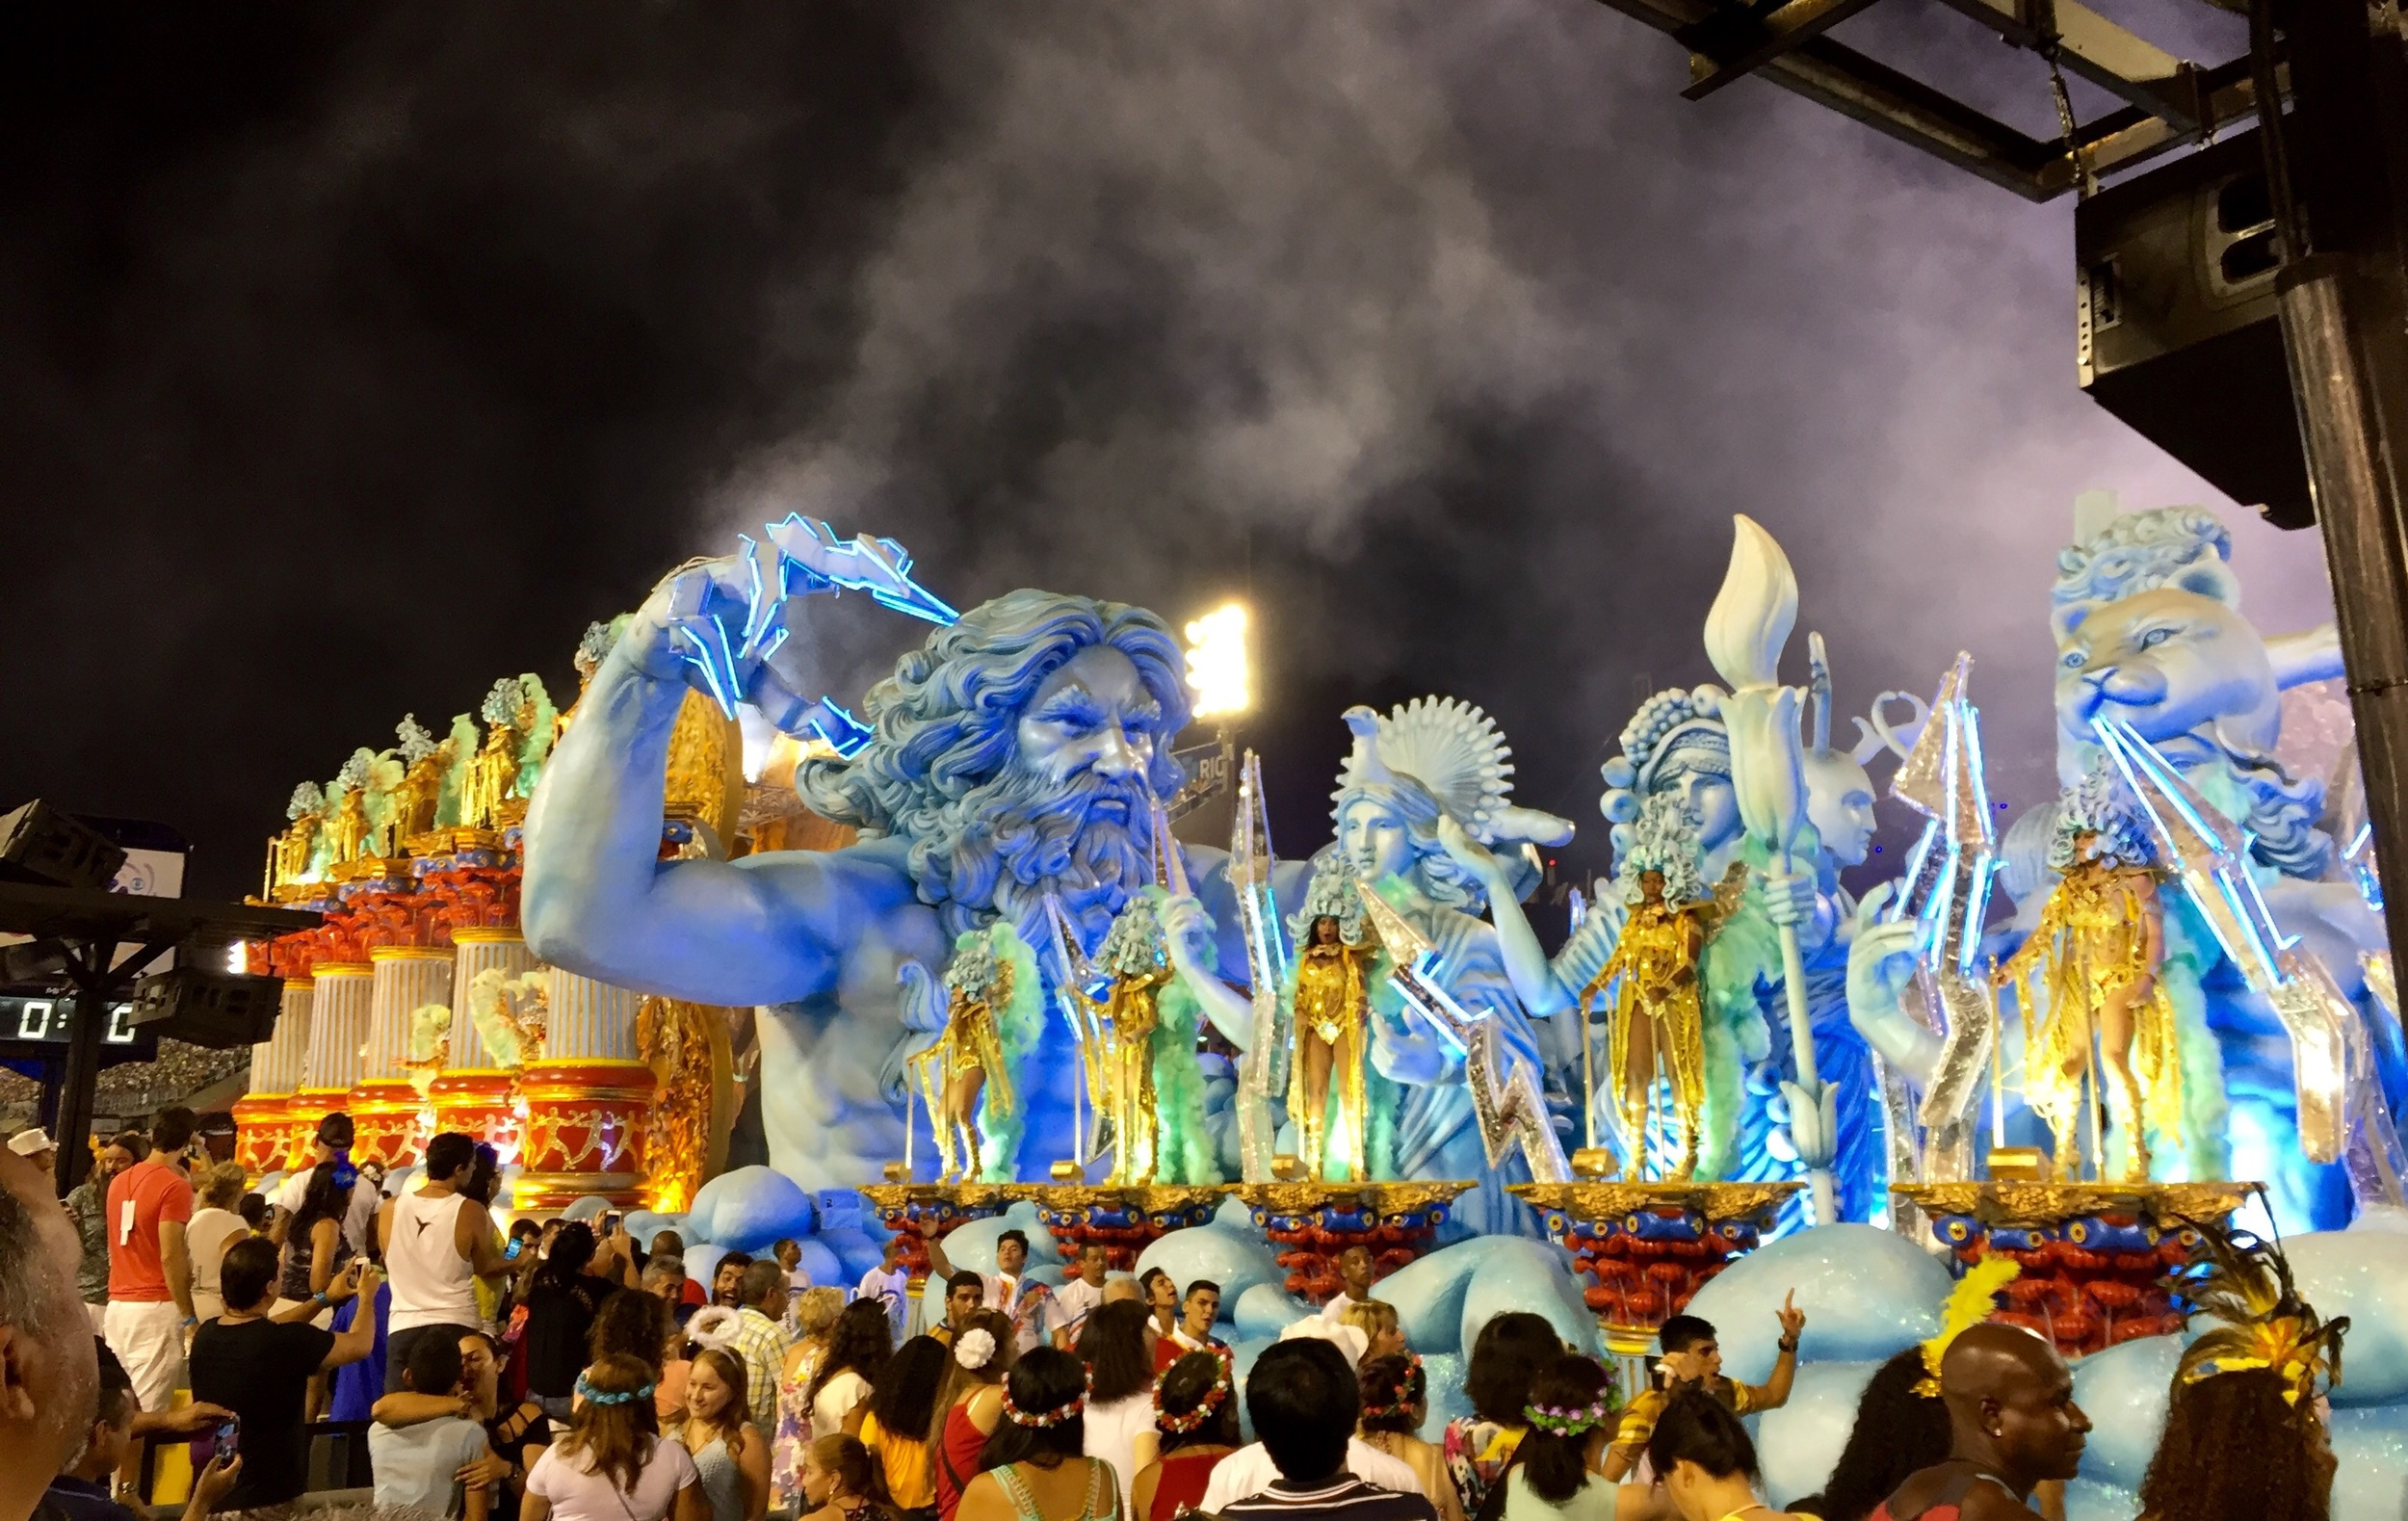 One of the samba school floats featured Zeus - complete with lightning-like fingertips.